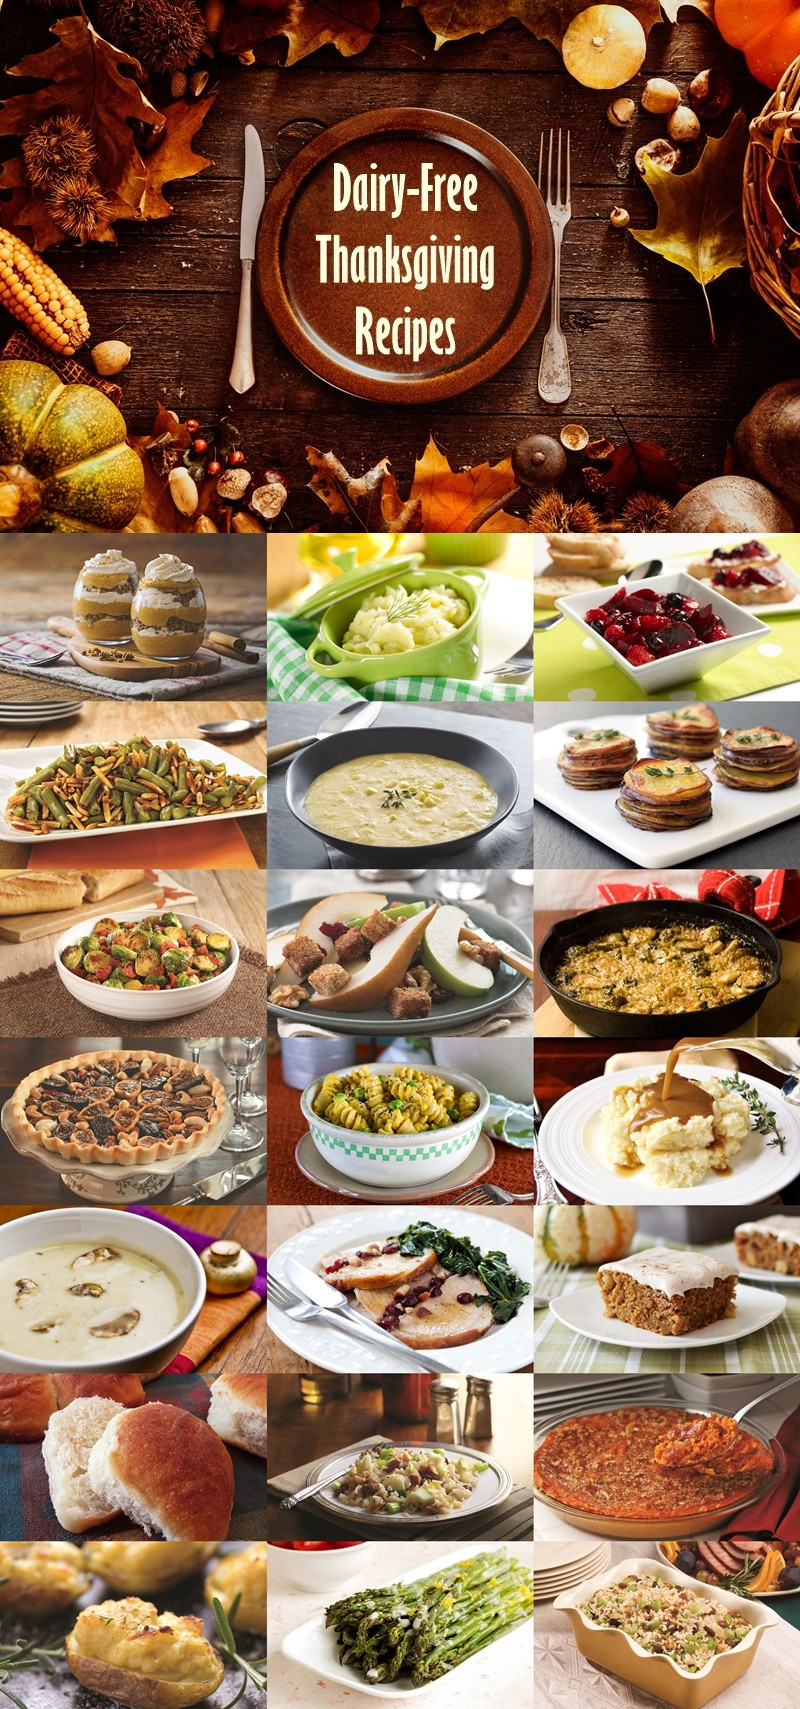 Polly'S Pies Thanksgiving Dinner To Go  The Biggest Gathering of Dairy Free Thanksgiving Recipes